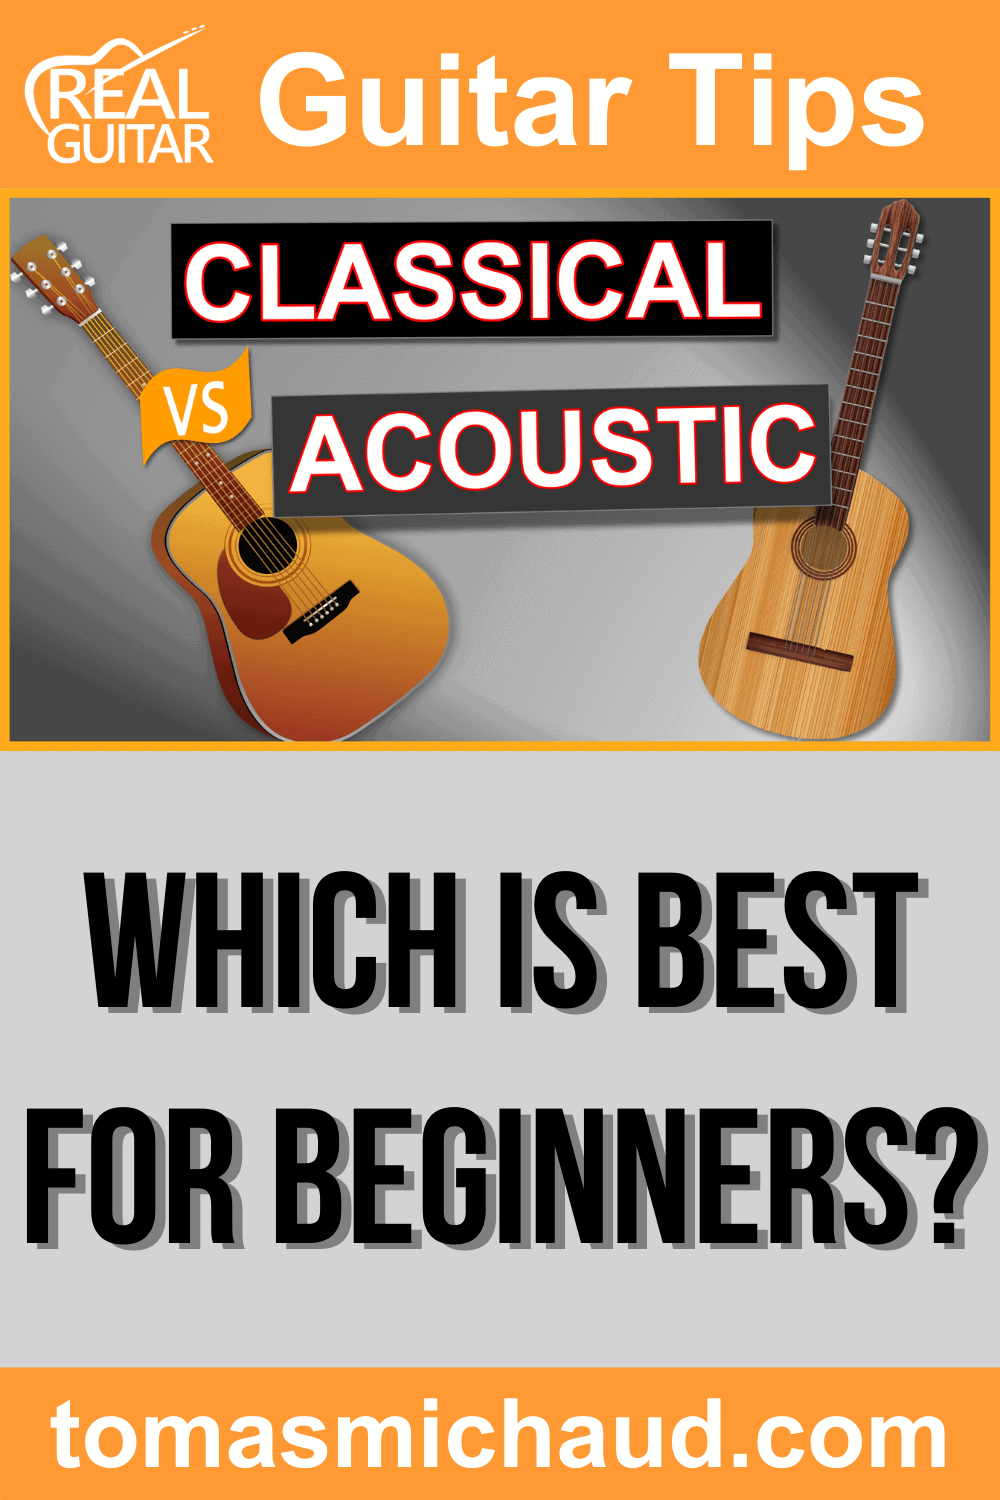 Classical vs. Acoustic. Which is best for beginners?